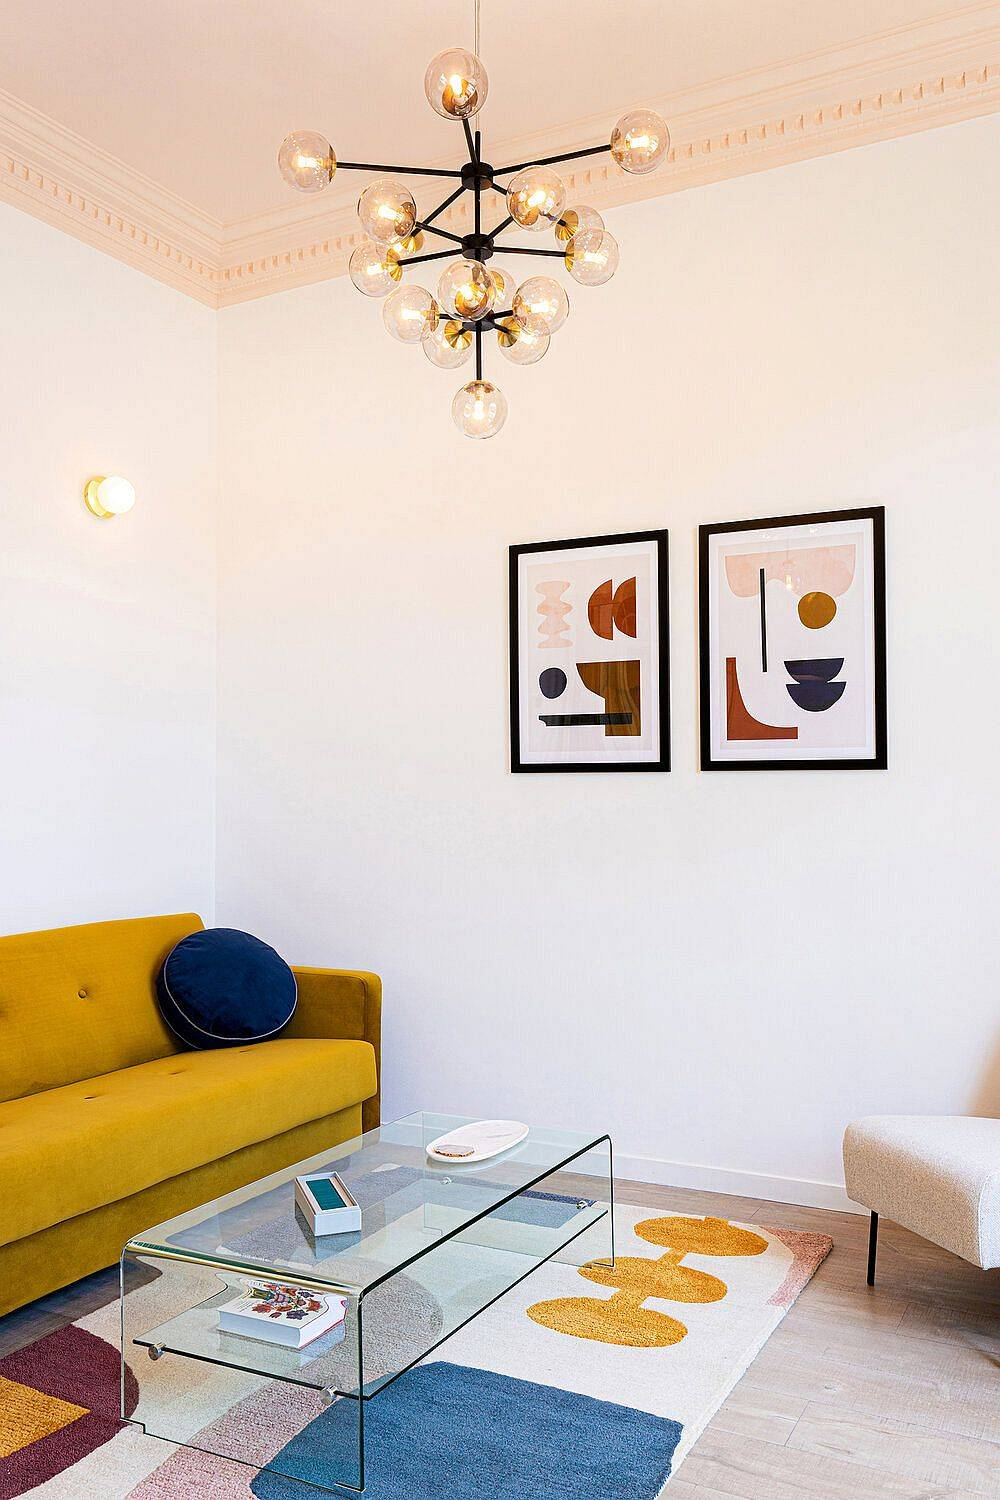 Delight-pops-of-yellow-blue-and-red-enliven-the-neutral-living-space-73245